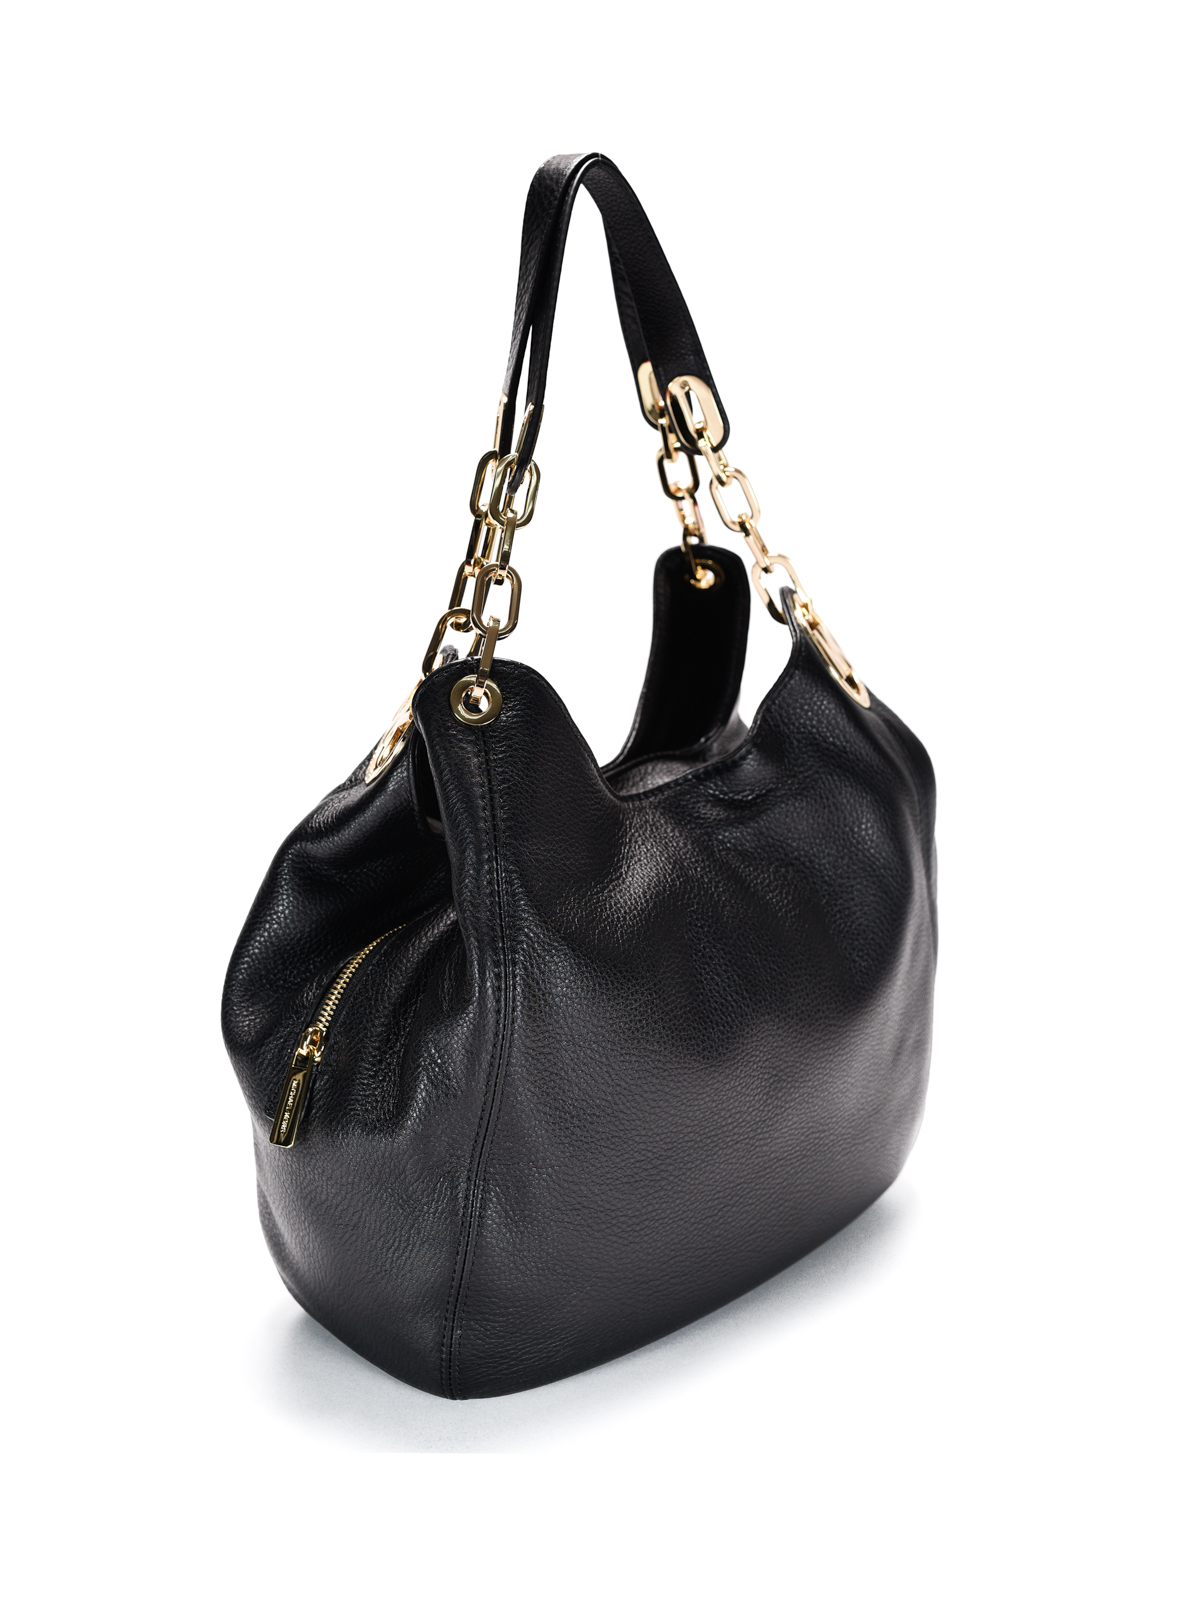 eced80c49b8e MICHAEL KORS: shoulder bags online - Fulton large black leather shoulder bag